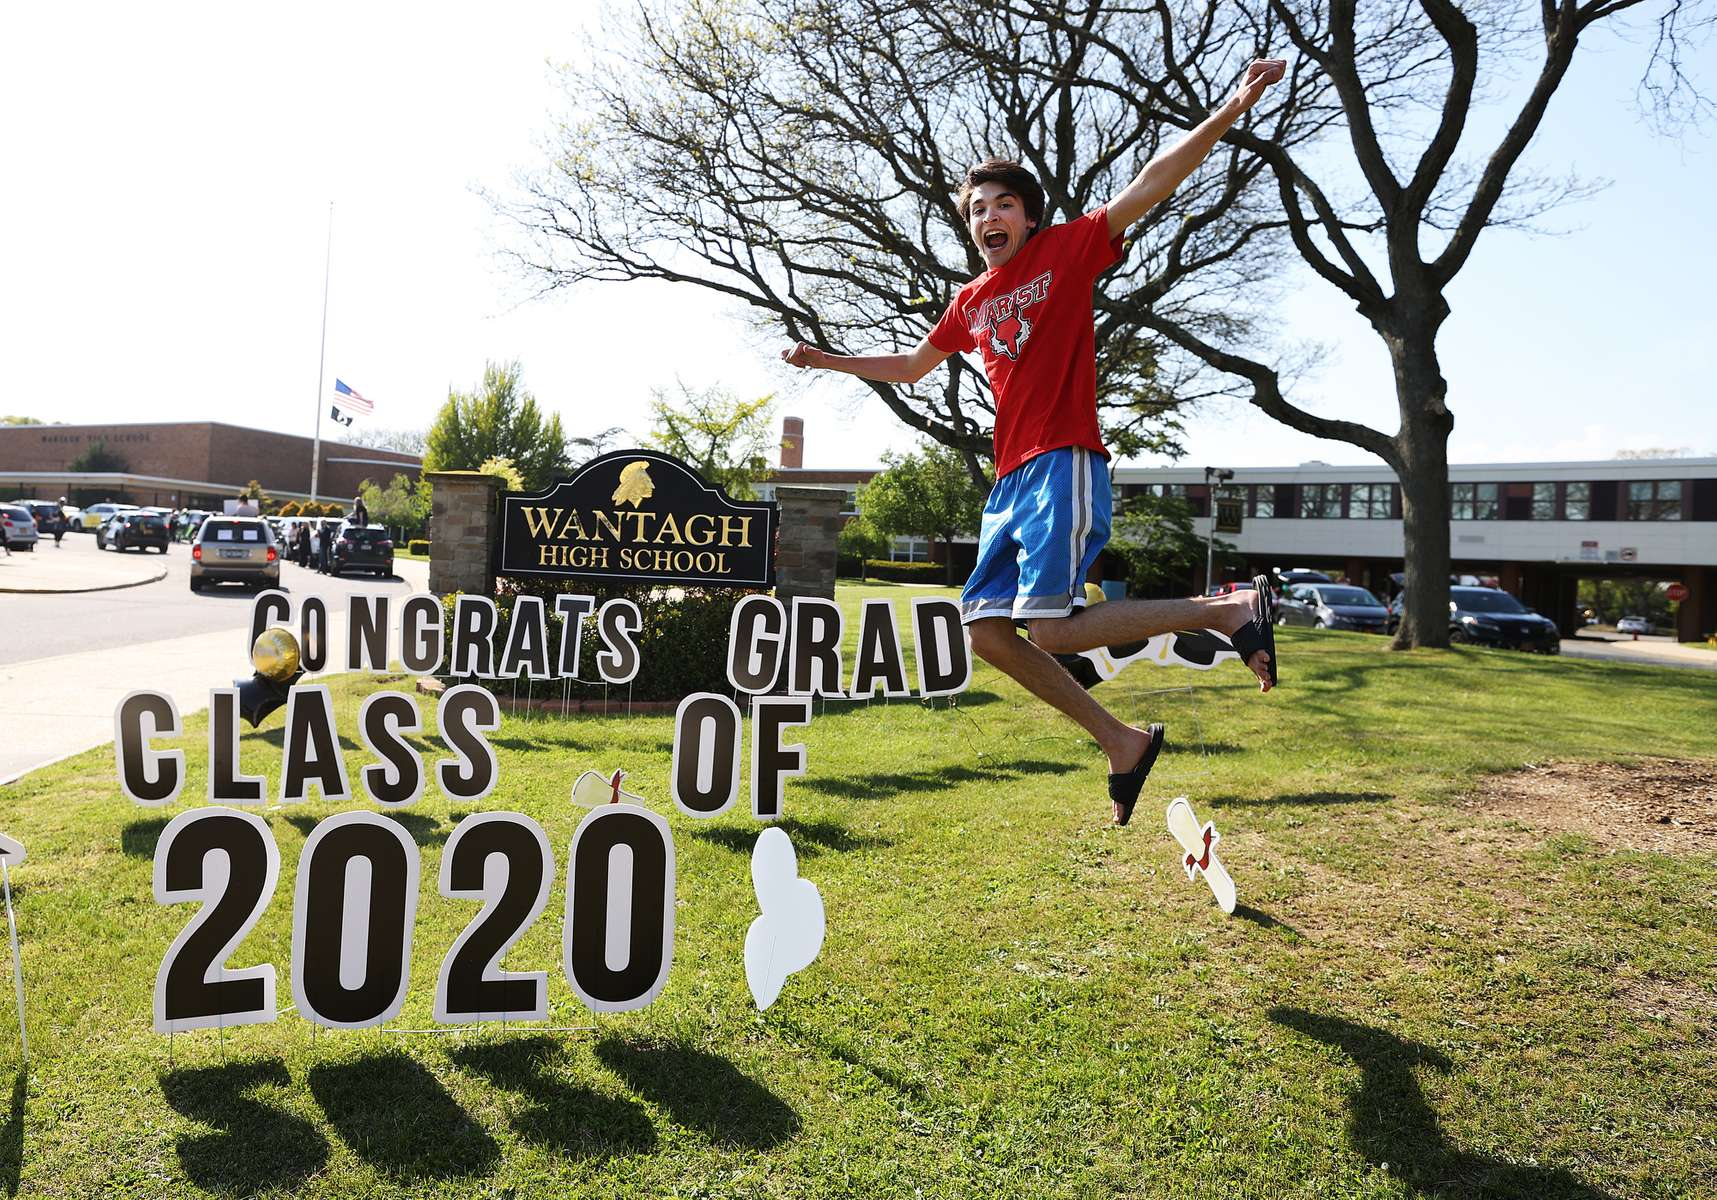 WANTAGH, NEW YORK - MAY 15:  John Sileo, Wantagh High School Co-President class of 2020 poses in front of a sign on the grass as graduating Seniors from Wantagh High School drive by the front of the school and their teachers cheer for them on May 15, 2020 in Wantagh, New York.  The school semester  has been cancelled and students had to finish their year with online video classes due to the coronavirus COVID-19 pandemic.  (Photo by Al Bello/Getty Images)